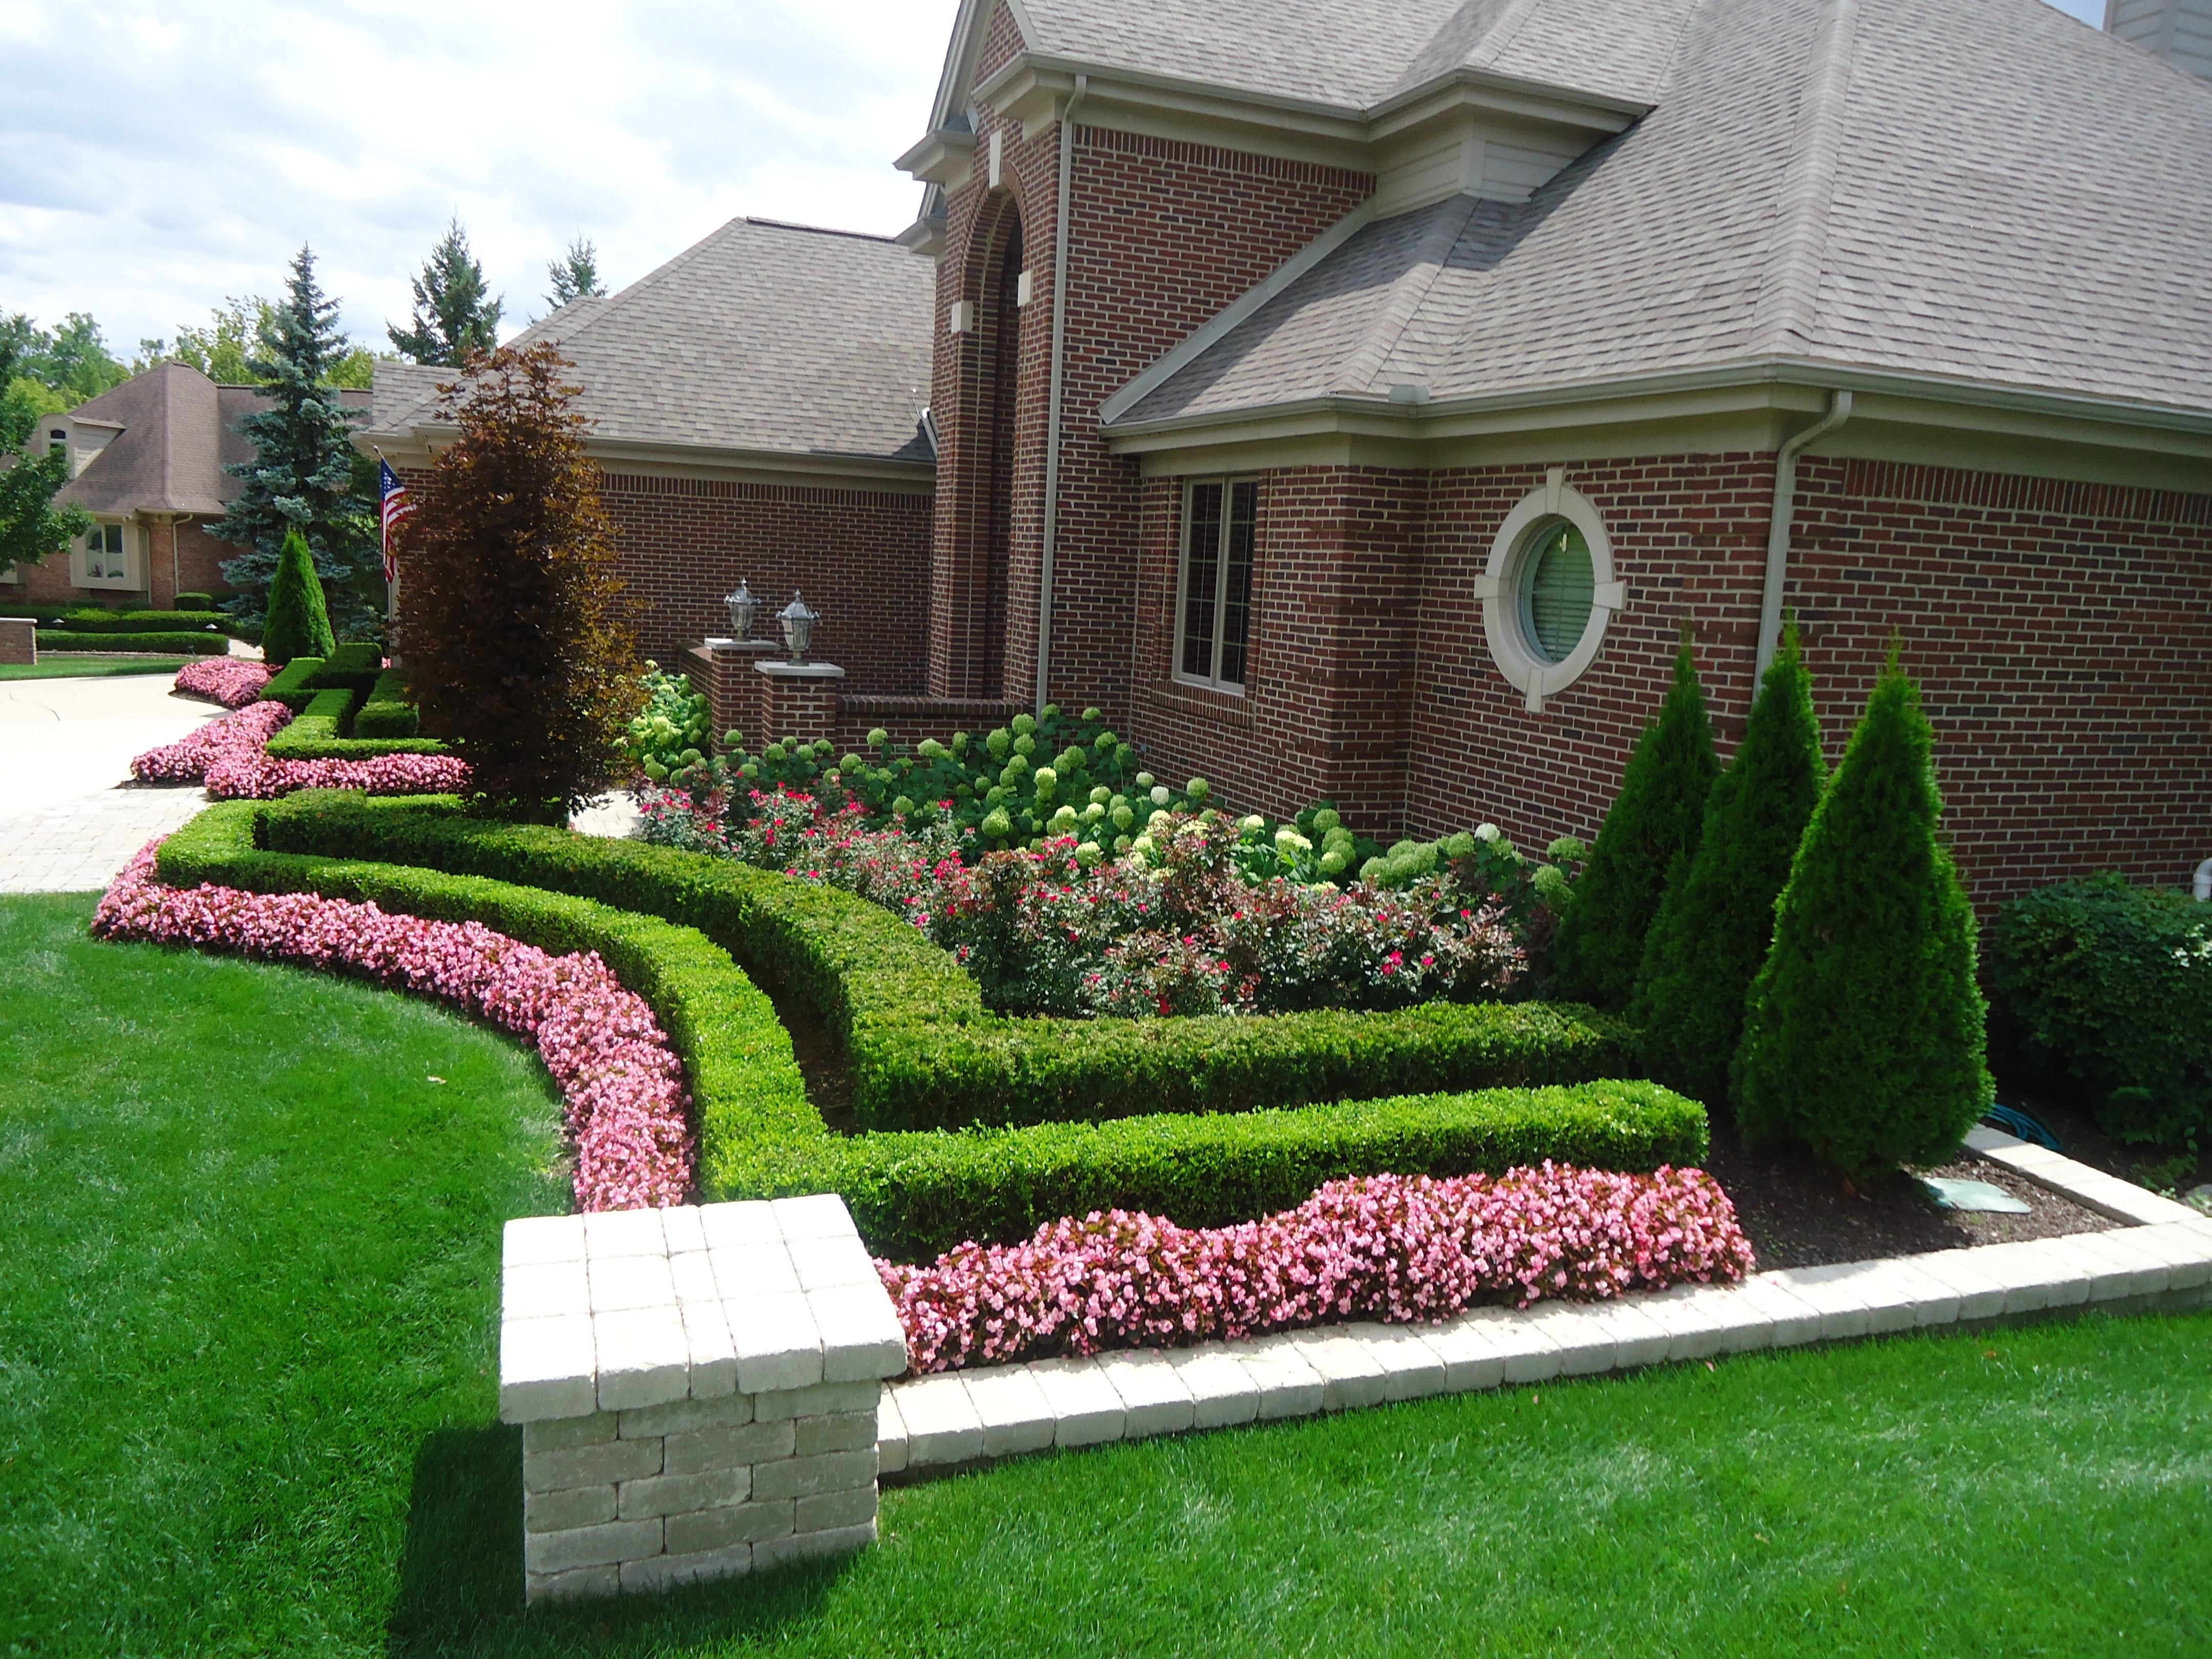 10 Nice Ideas For Front Yard Landscaping front yard landscape design ideas landscape curb appeal 2020